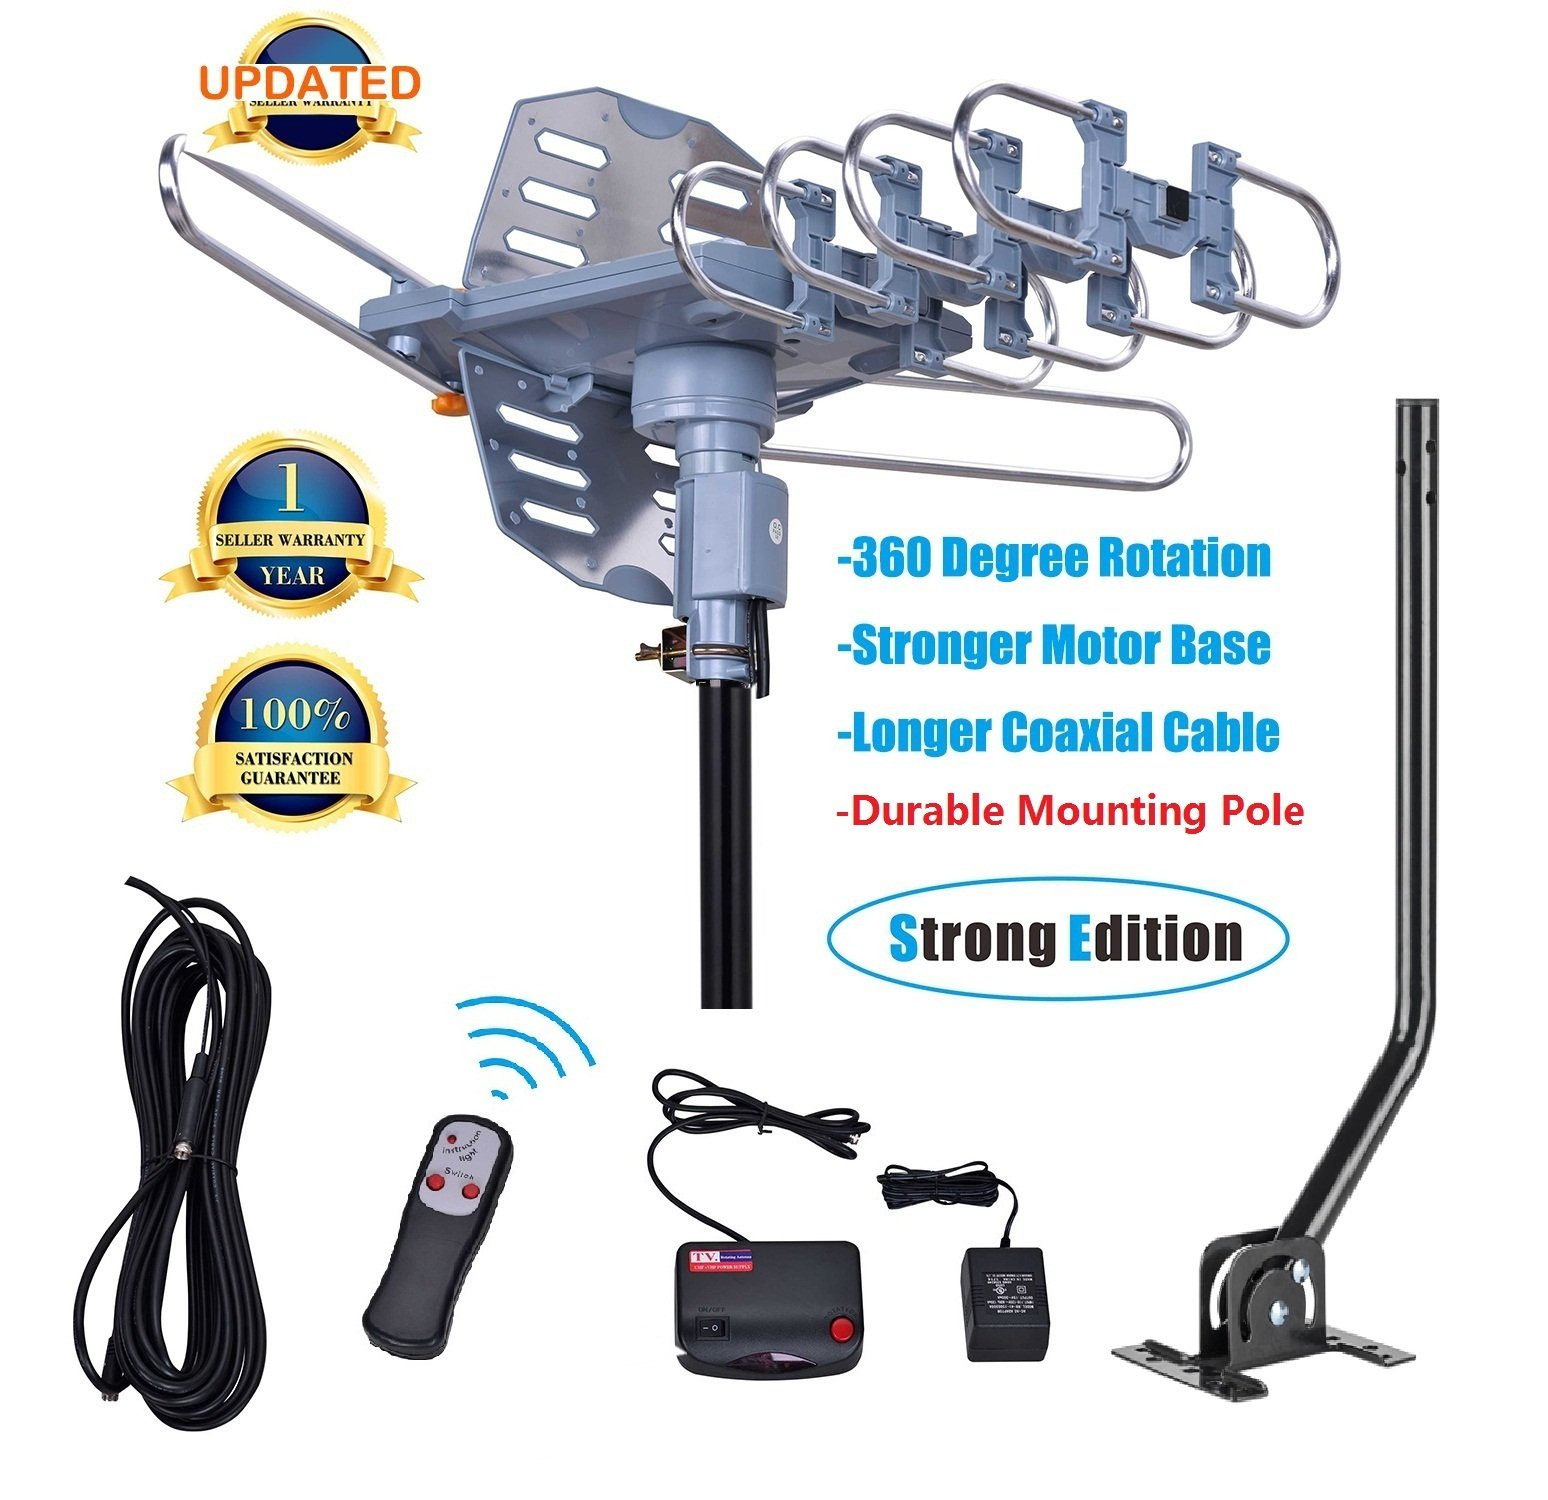 150 Miles Range-Amplified Digital Outdoor TV Antenna with Mount Pole-4K/1080p High Reception-40FT Coaxial Cable-360° Rotation Wireless Remote- Snap On Installation Support 2TVs